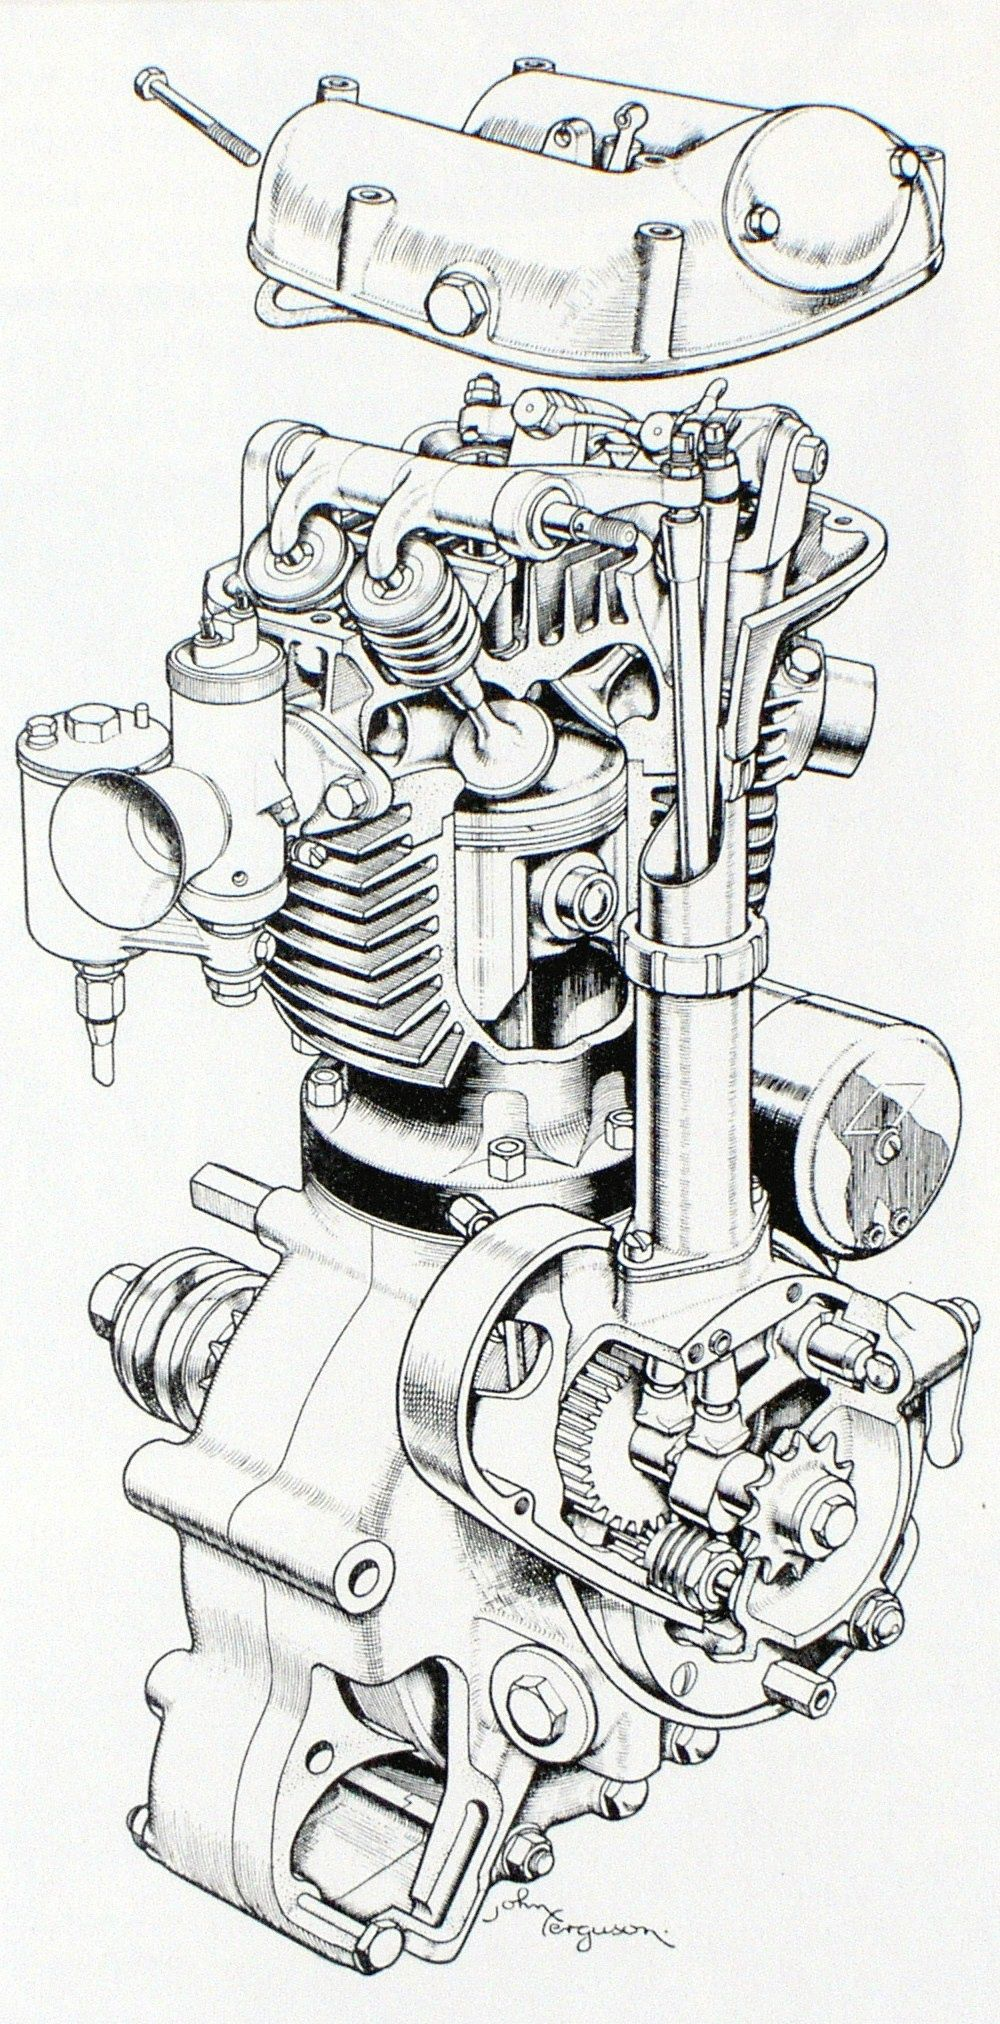 Vintage 1930's car motor diagram illustration super automobile engine industrial art perfect wall decor for home office or man cave men cave